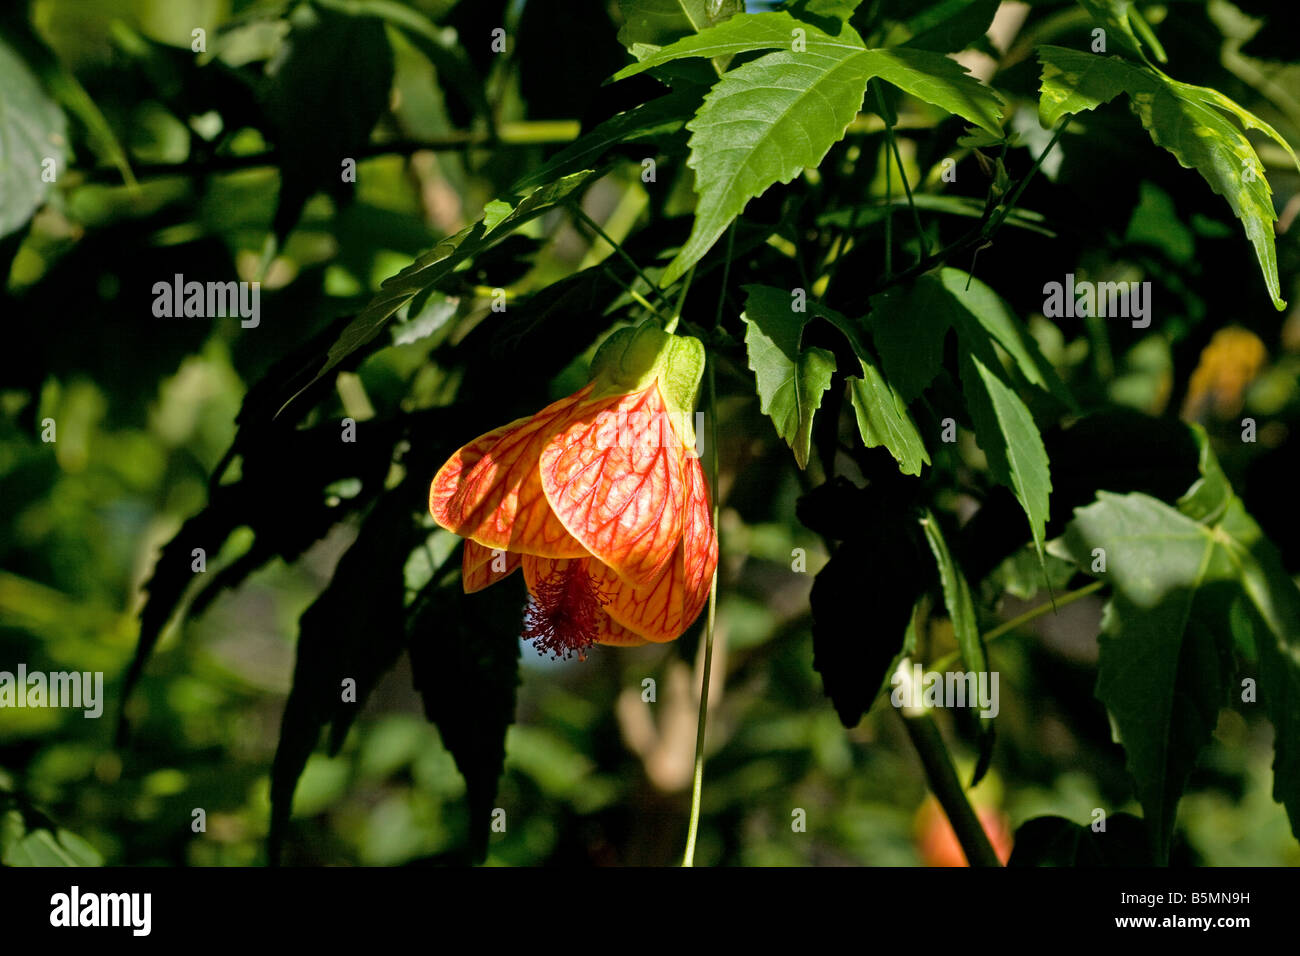 Red Vein Indian Mallow Abutilon Pictun Plant In Bloom Stock Photo